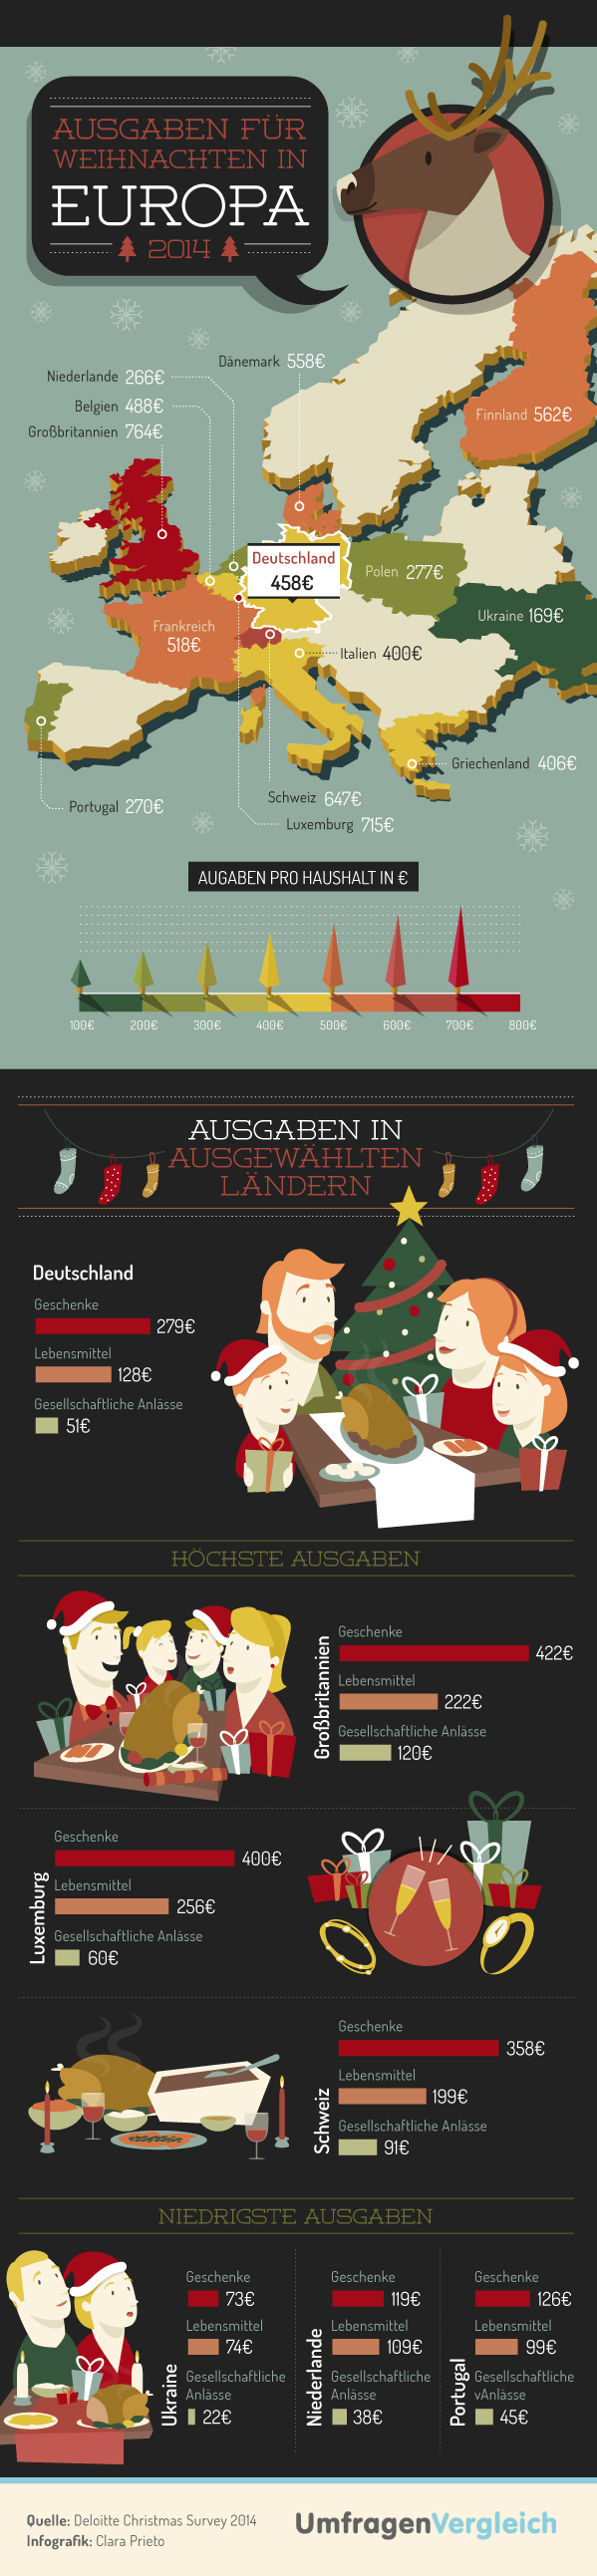 ausgaben f r weihnachten 2014 infografik deutsche. Black Bedroom Furniture Sets. Home Design Ideas